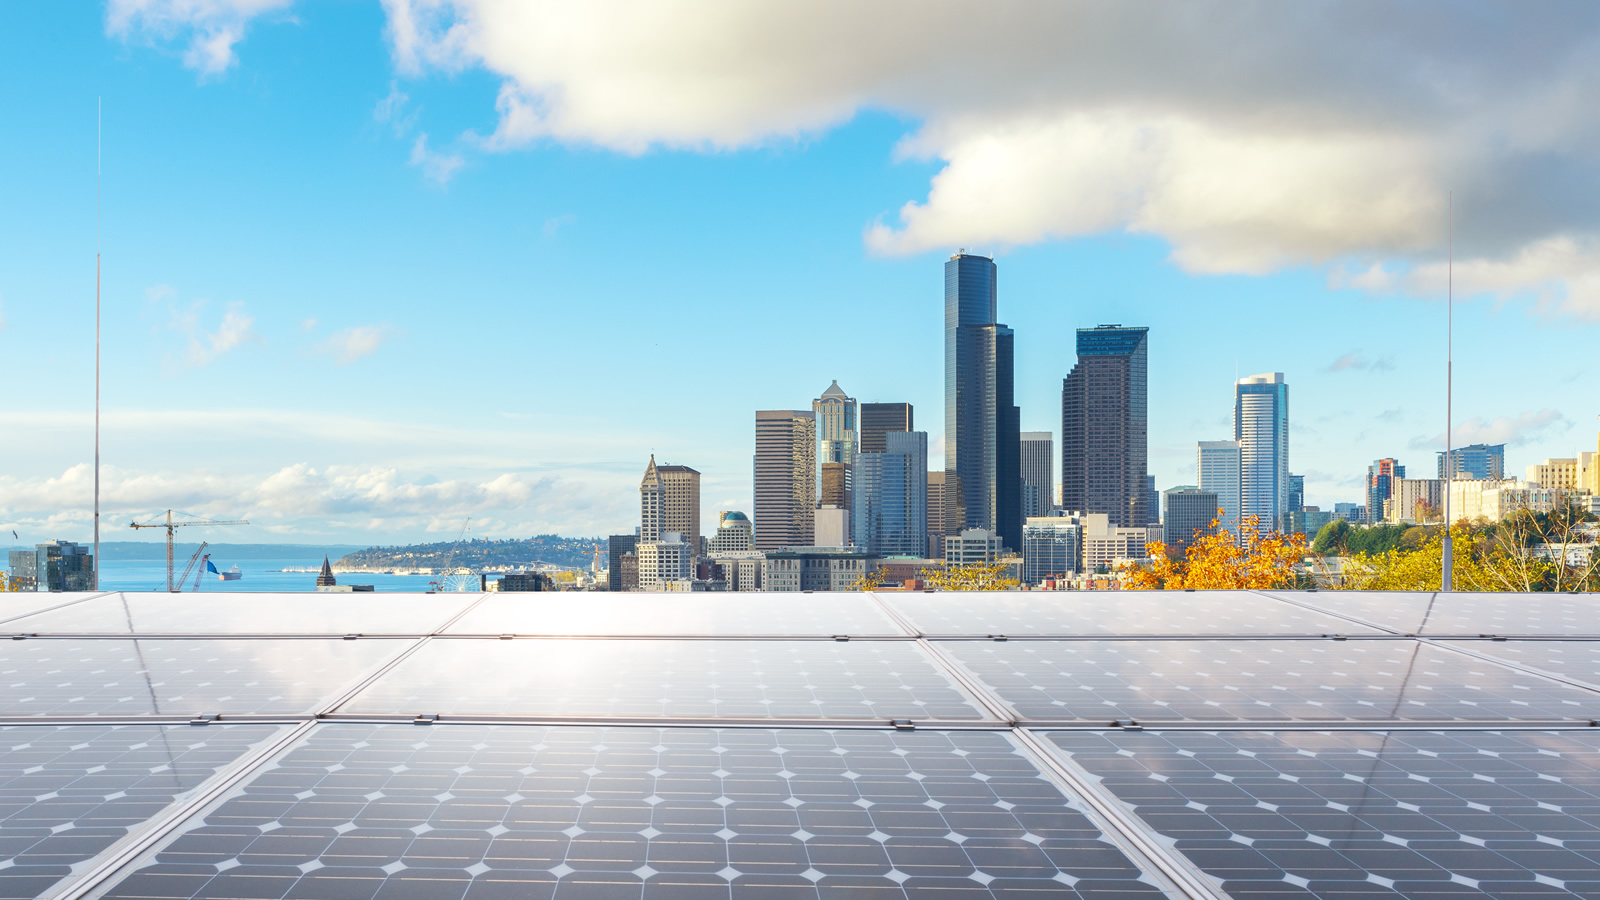 <h4>100% Renewable</h4> <h5>Goal: Convince 10 states and 50 campuses to transition to clean, renewable energy sources.</h5> <em>Los Angeles / zhu difeng via Shutterstock.com</em>